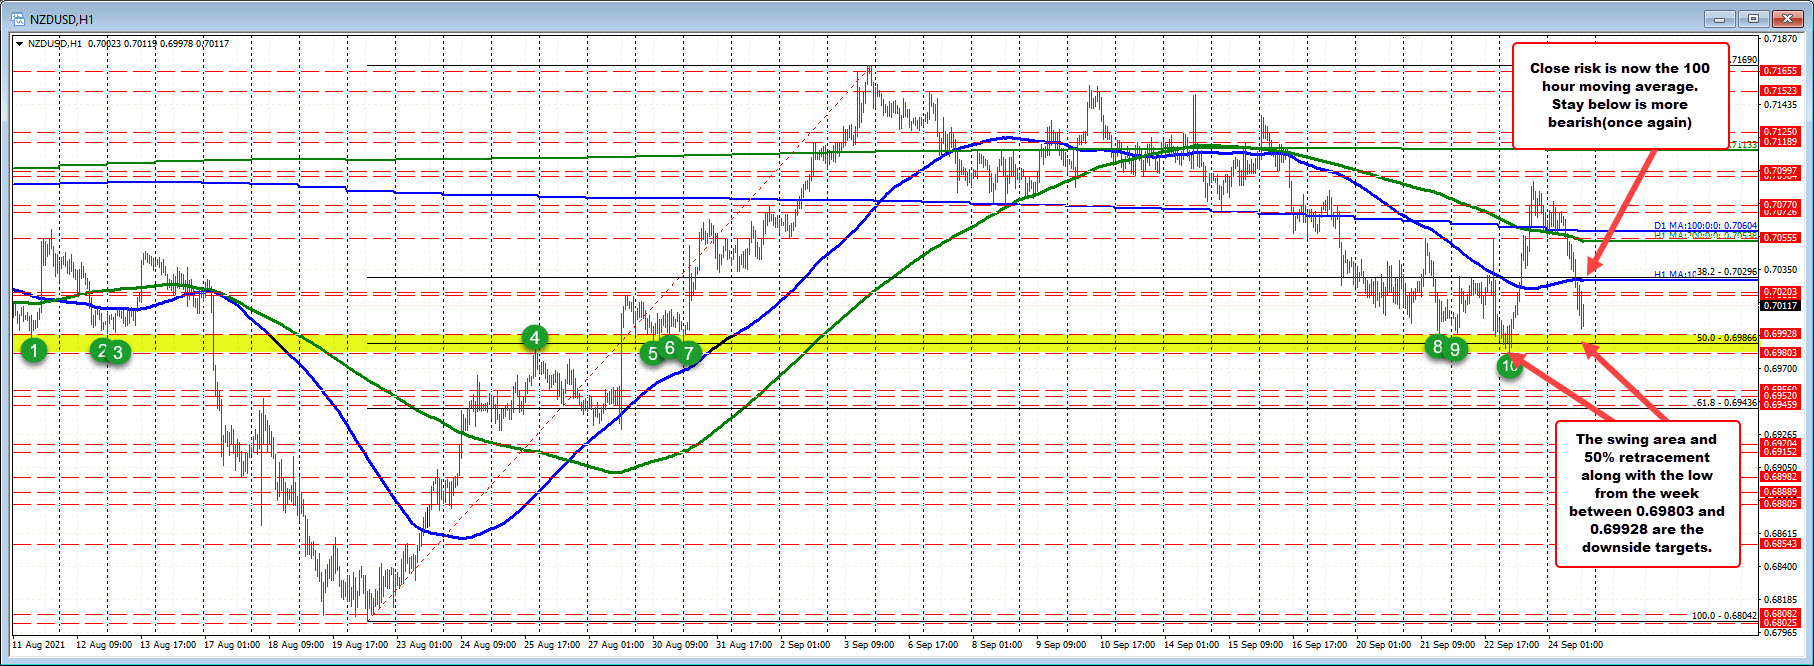 Technical sellingas to the move to the downside_